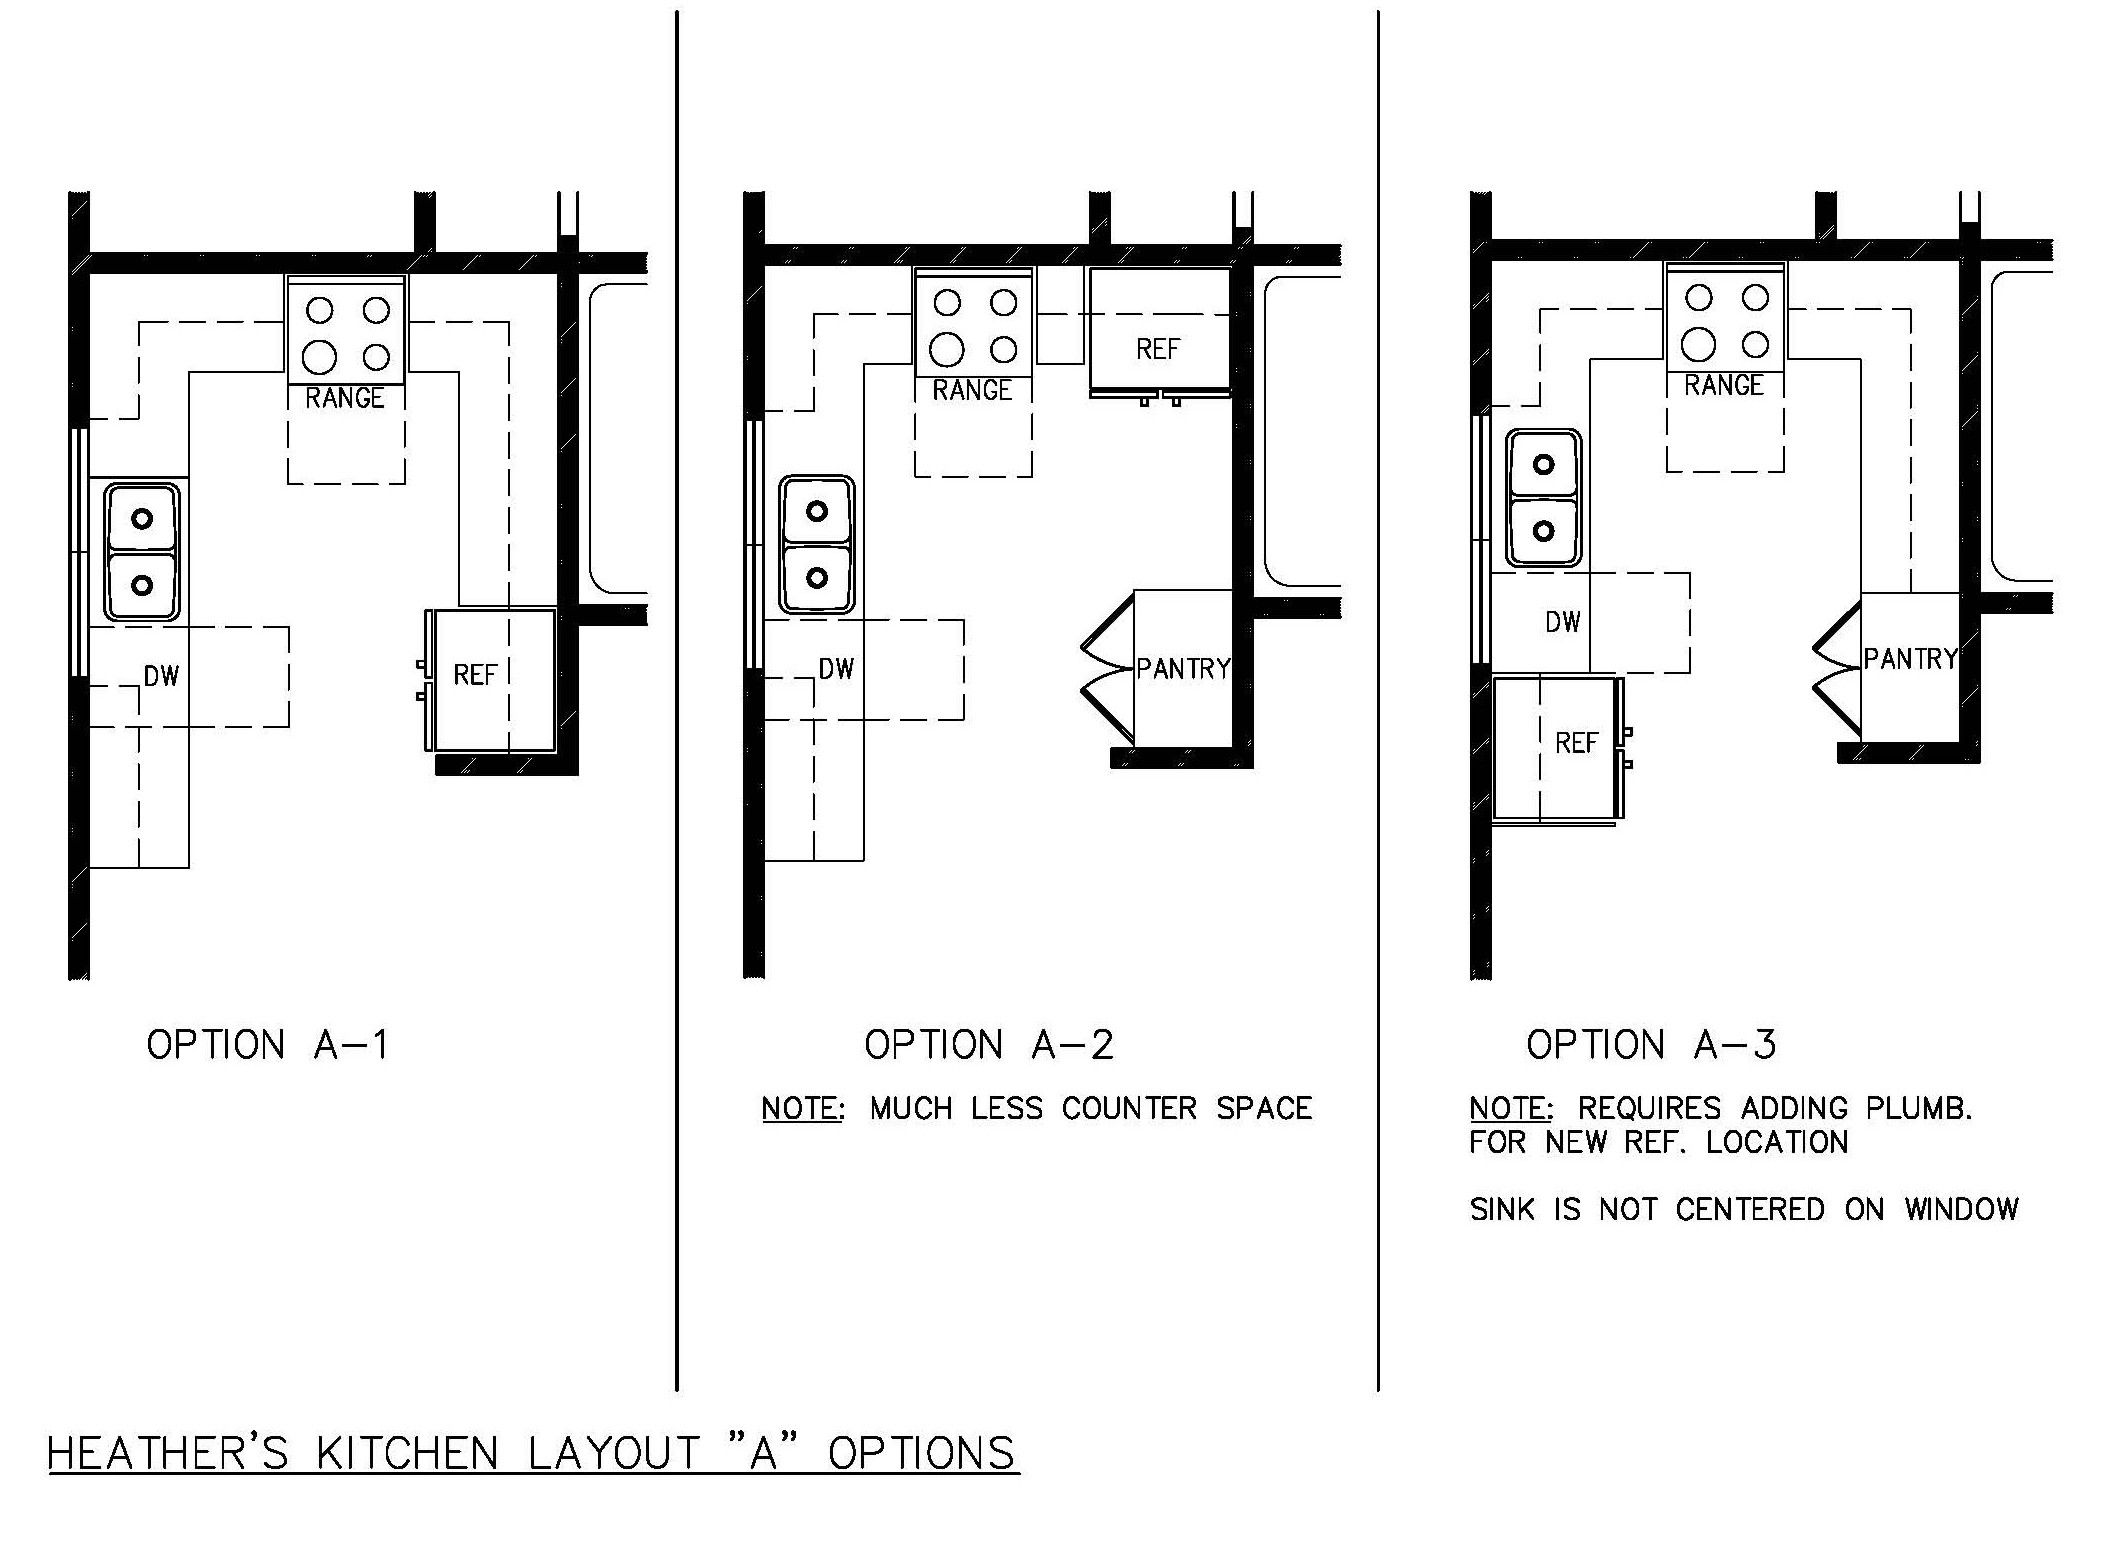 Kitchen Kitchen Design Architecture Design Ideas Plan Contemporary Drawing Landscape Small Kitchen Design Plans Small Kitchen Design Layout Small Kitchen Plans